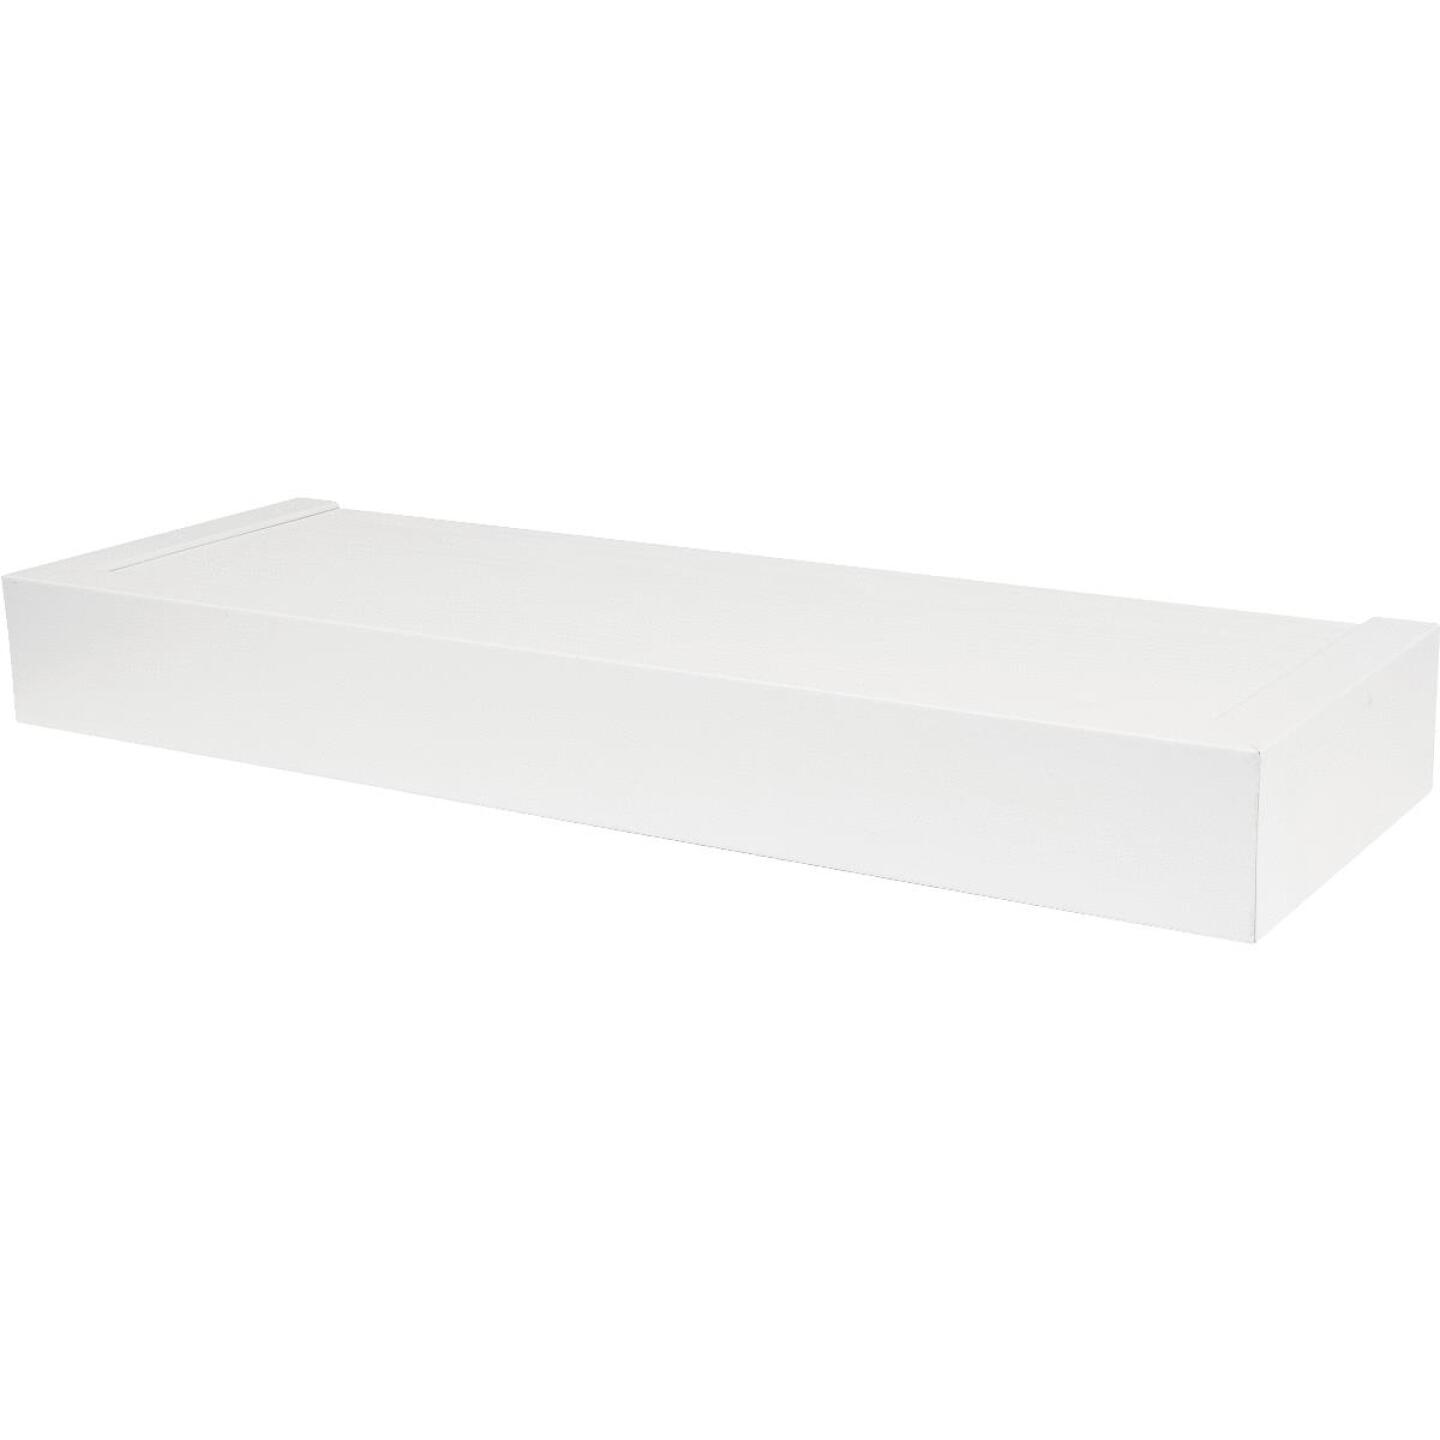 High and Mighty 18 In. White Floating Shelf  Image 1